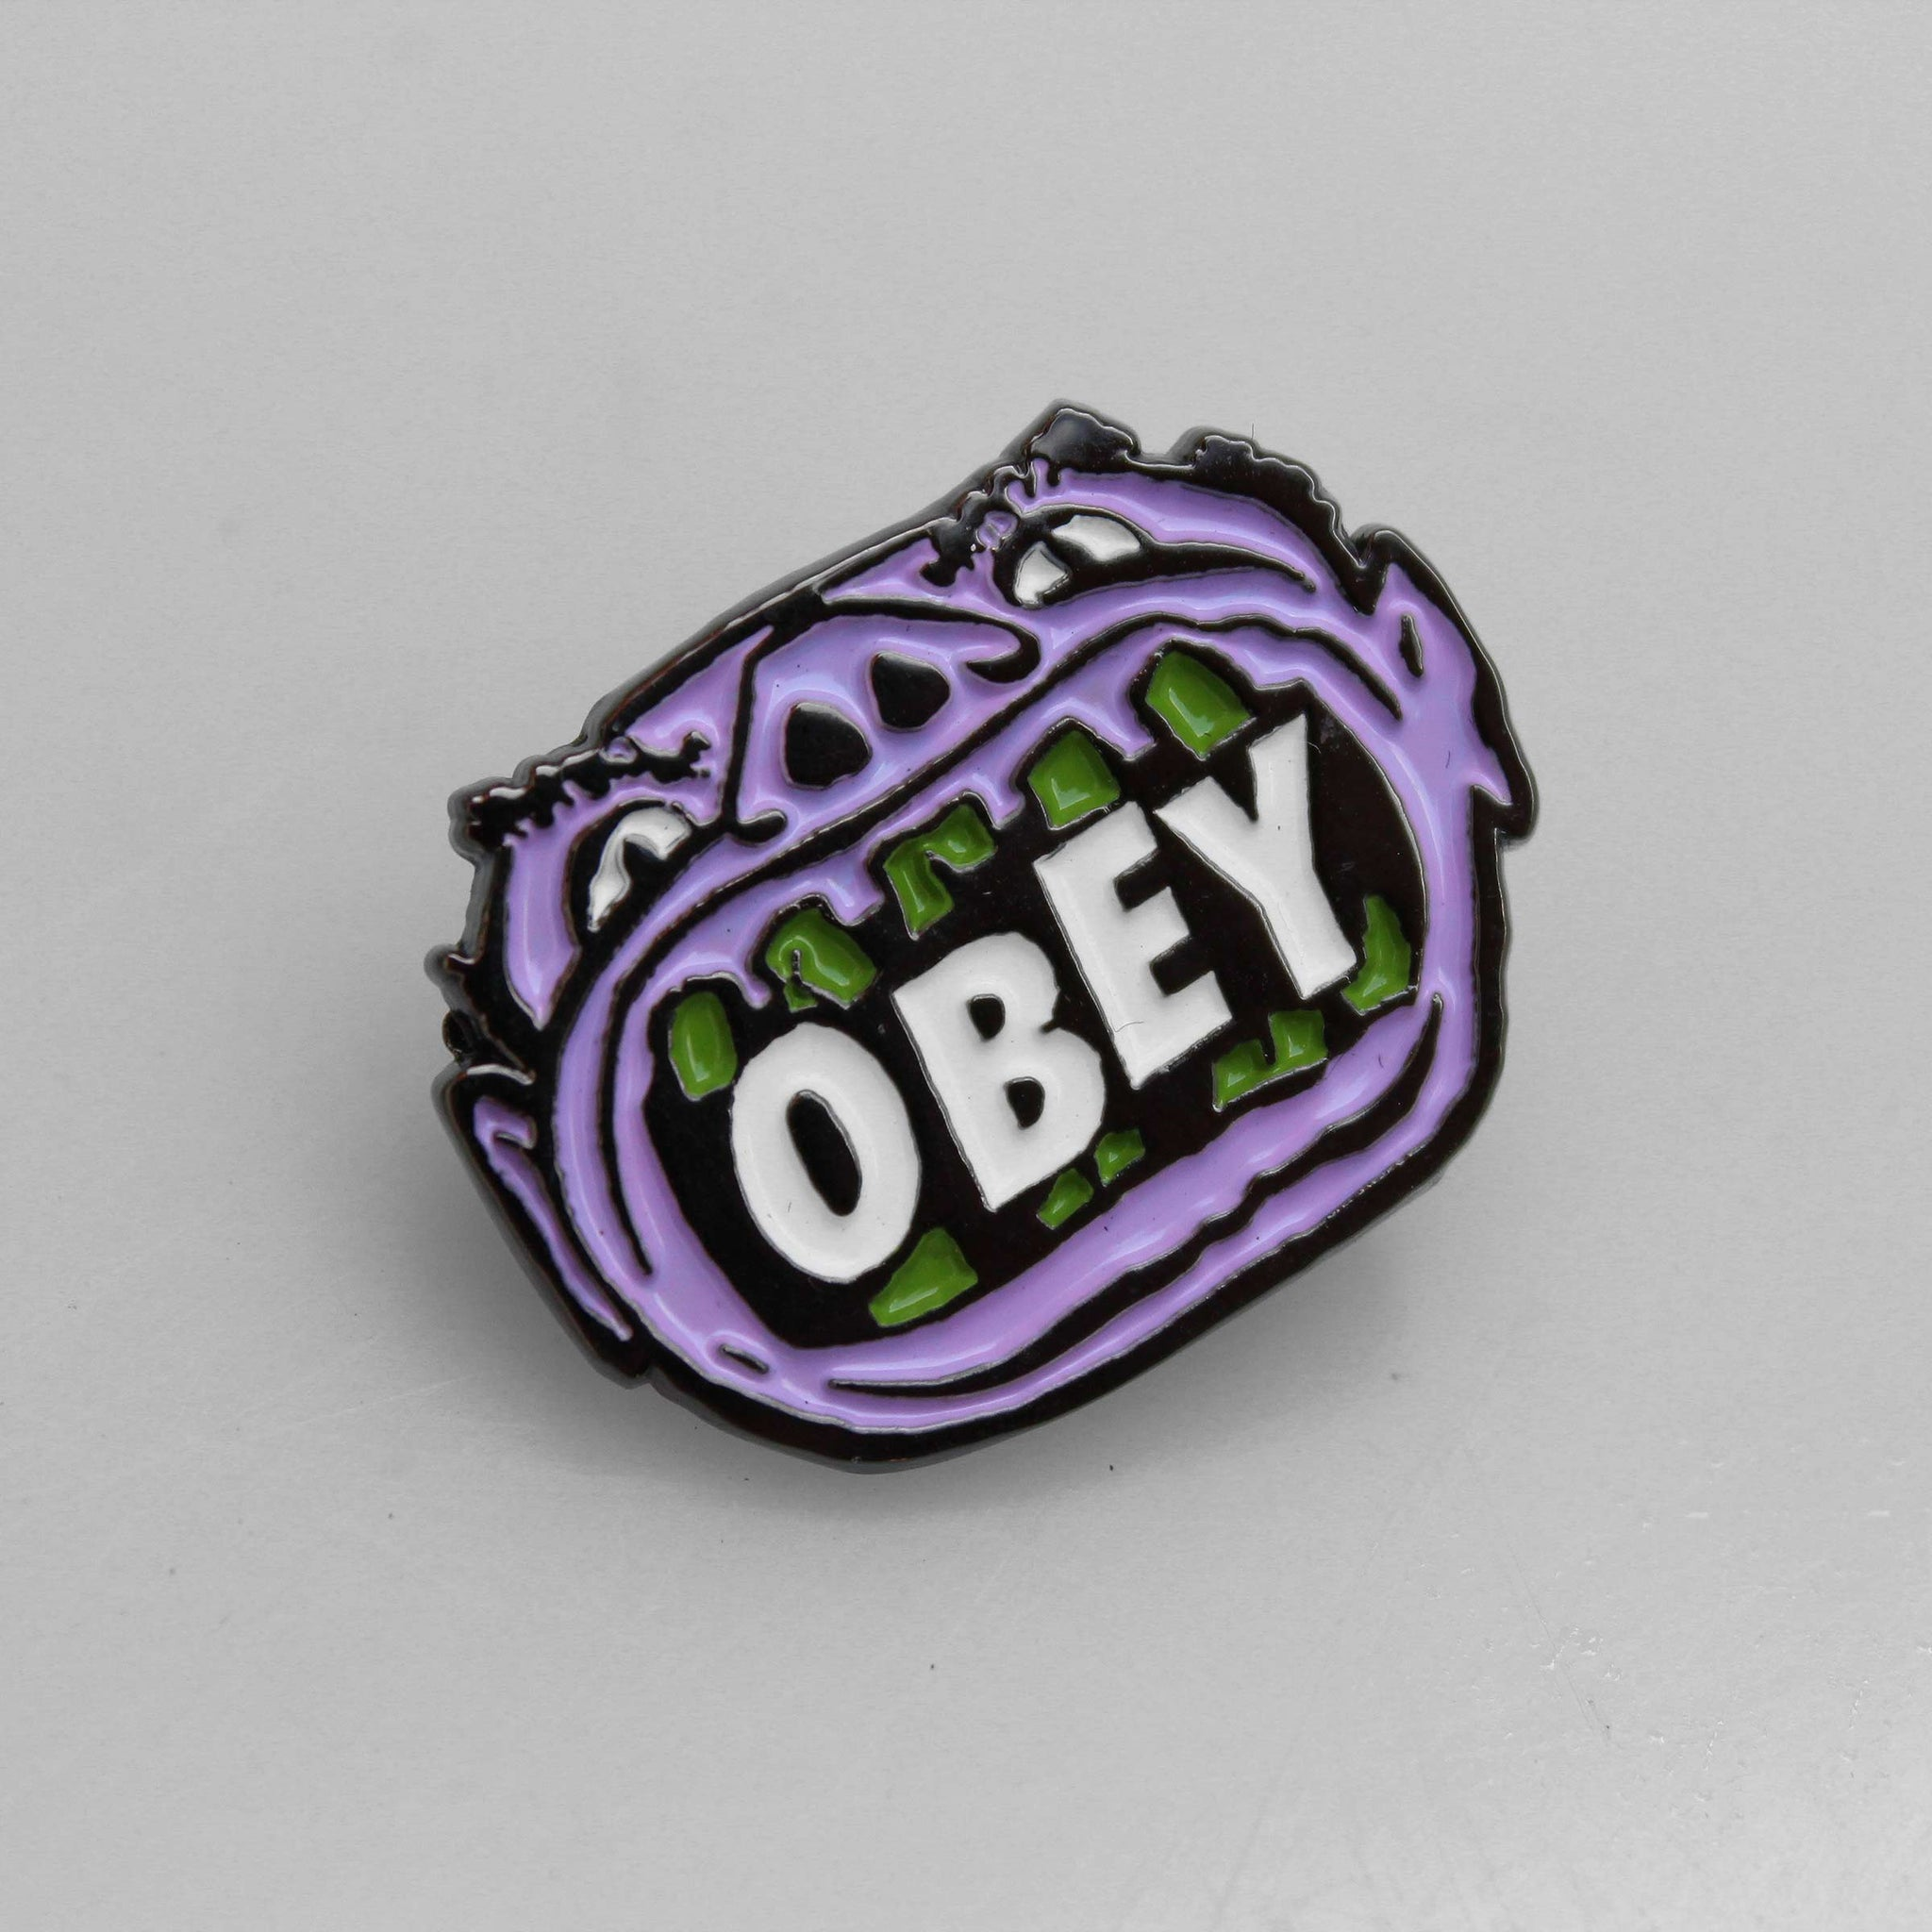 Obey Mouth Pin Badge